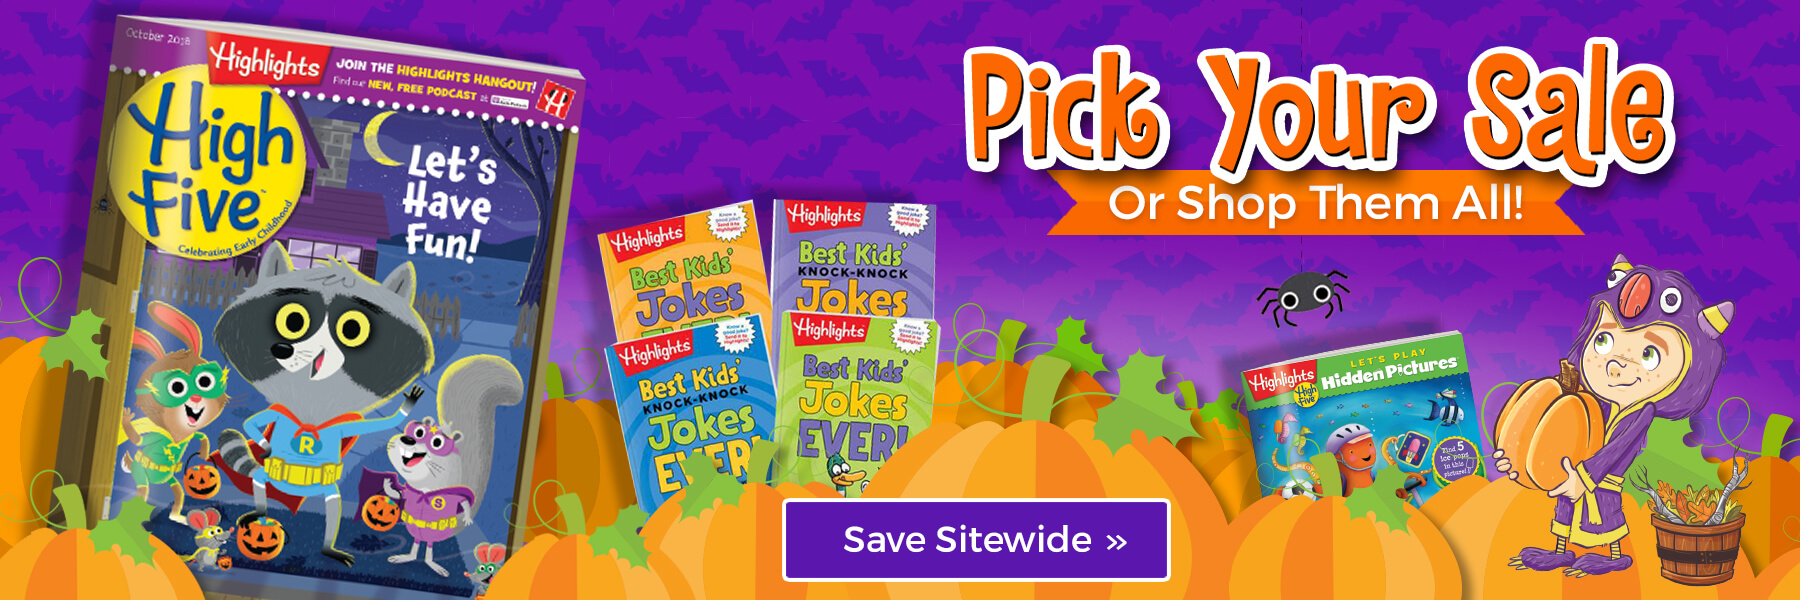 Pick your sale, or shop them all sitewide!